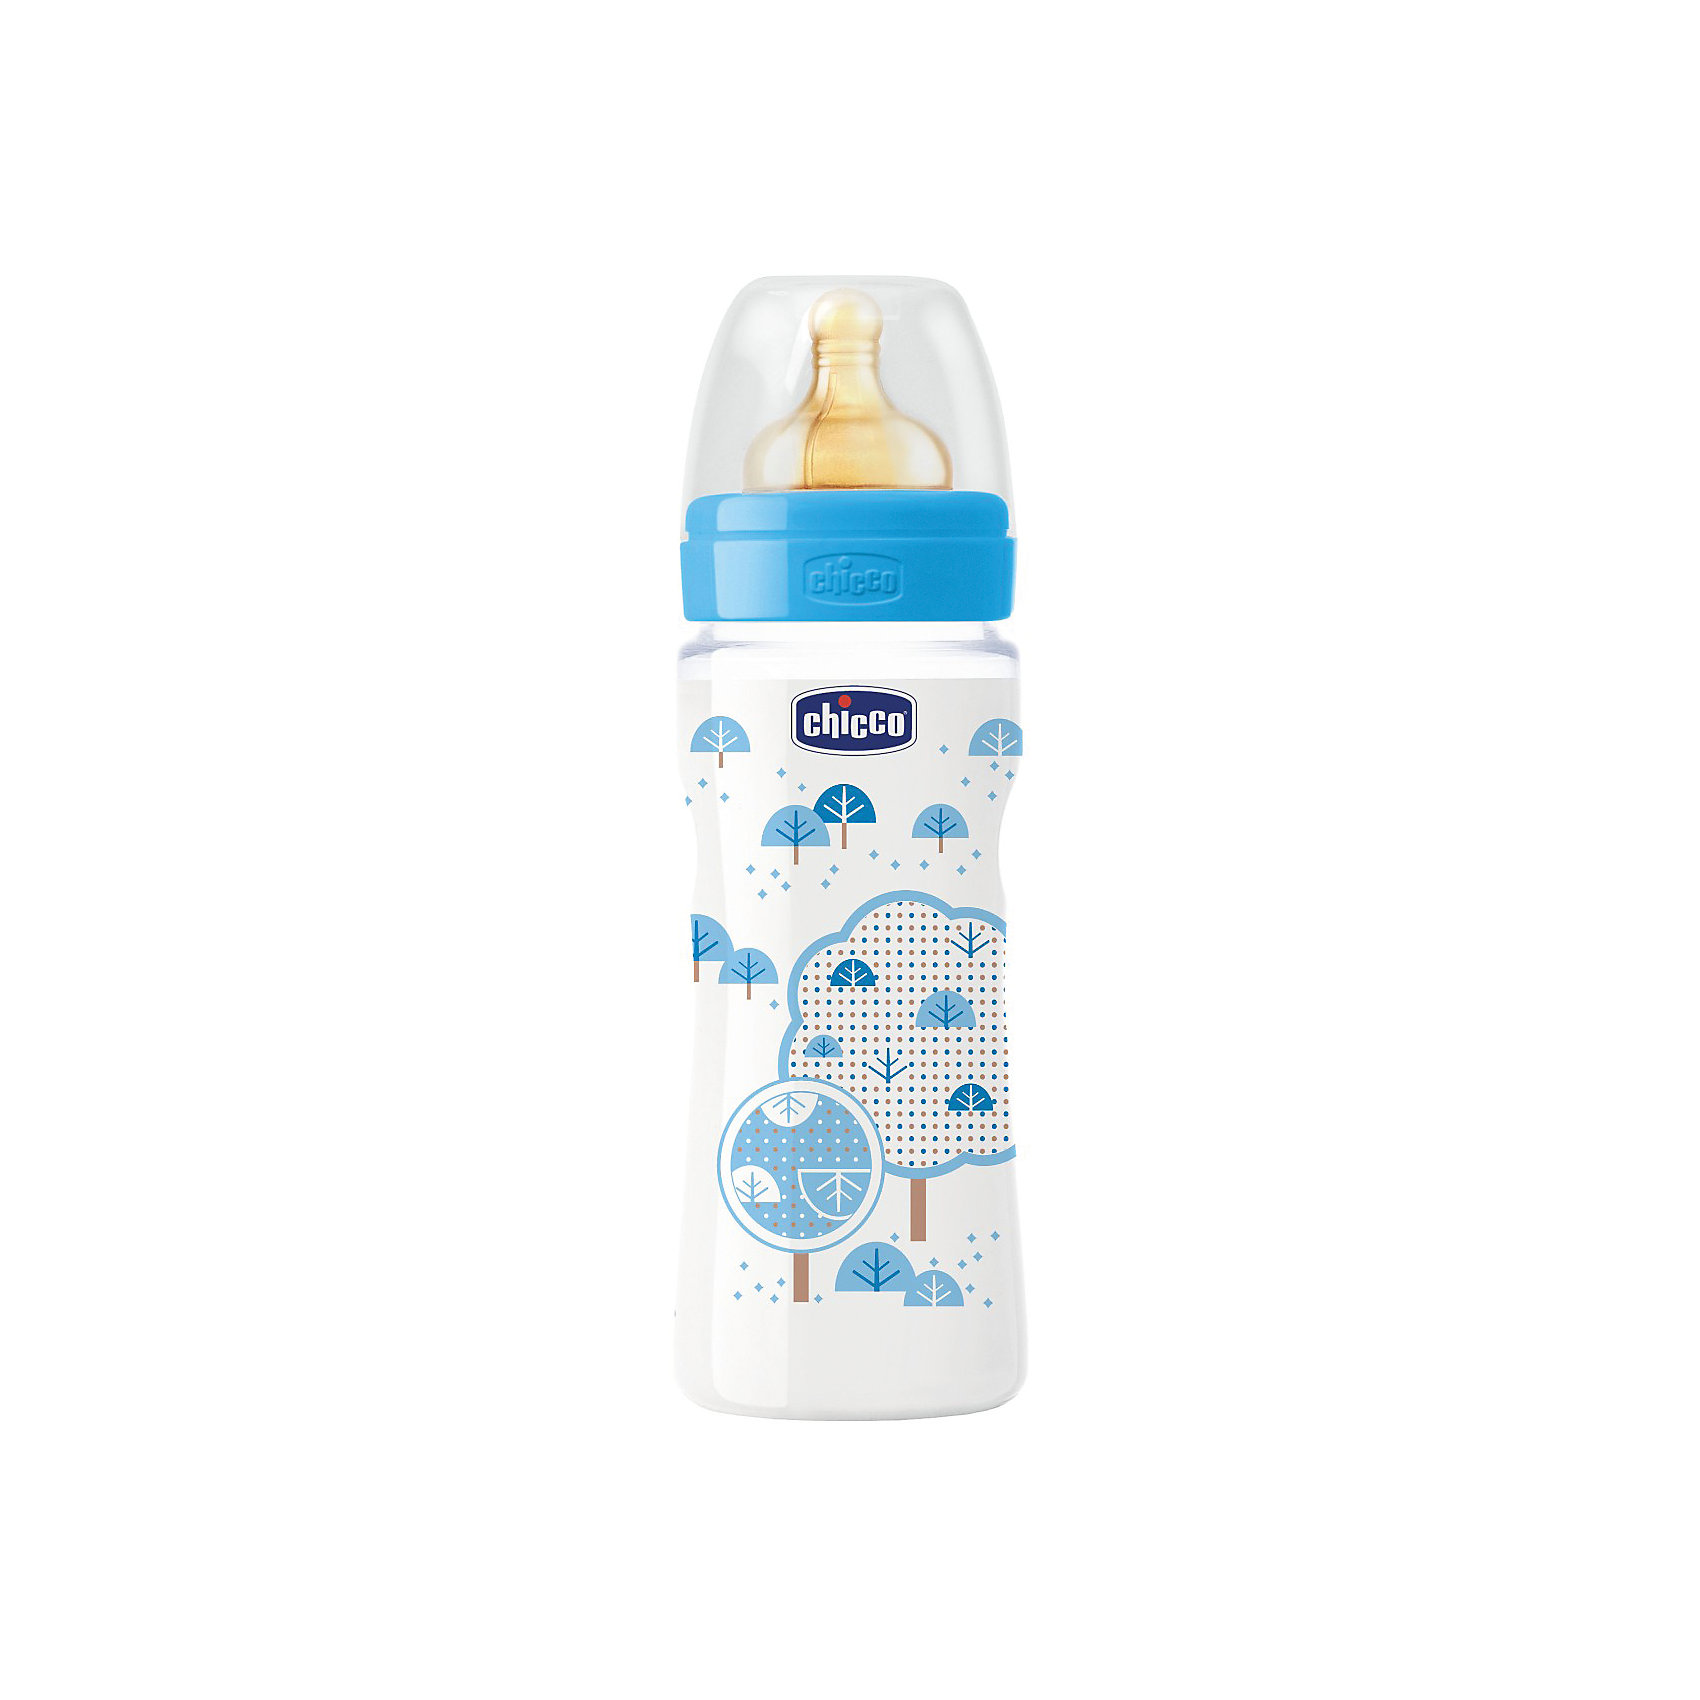 цена на CHICCO Бутылочка Well-Being Boy 4мес.+, лат.соска, РР, 330мл., CHICCO